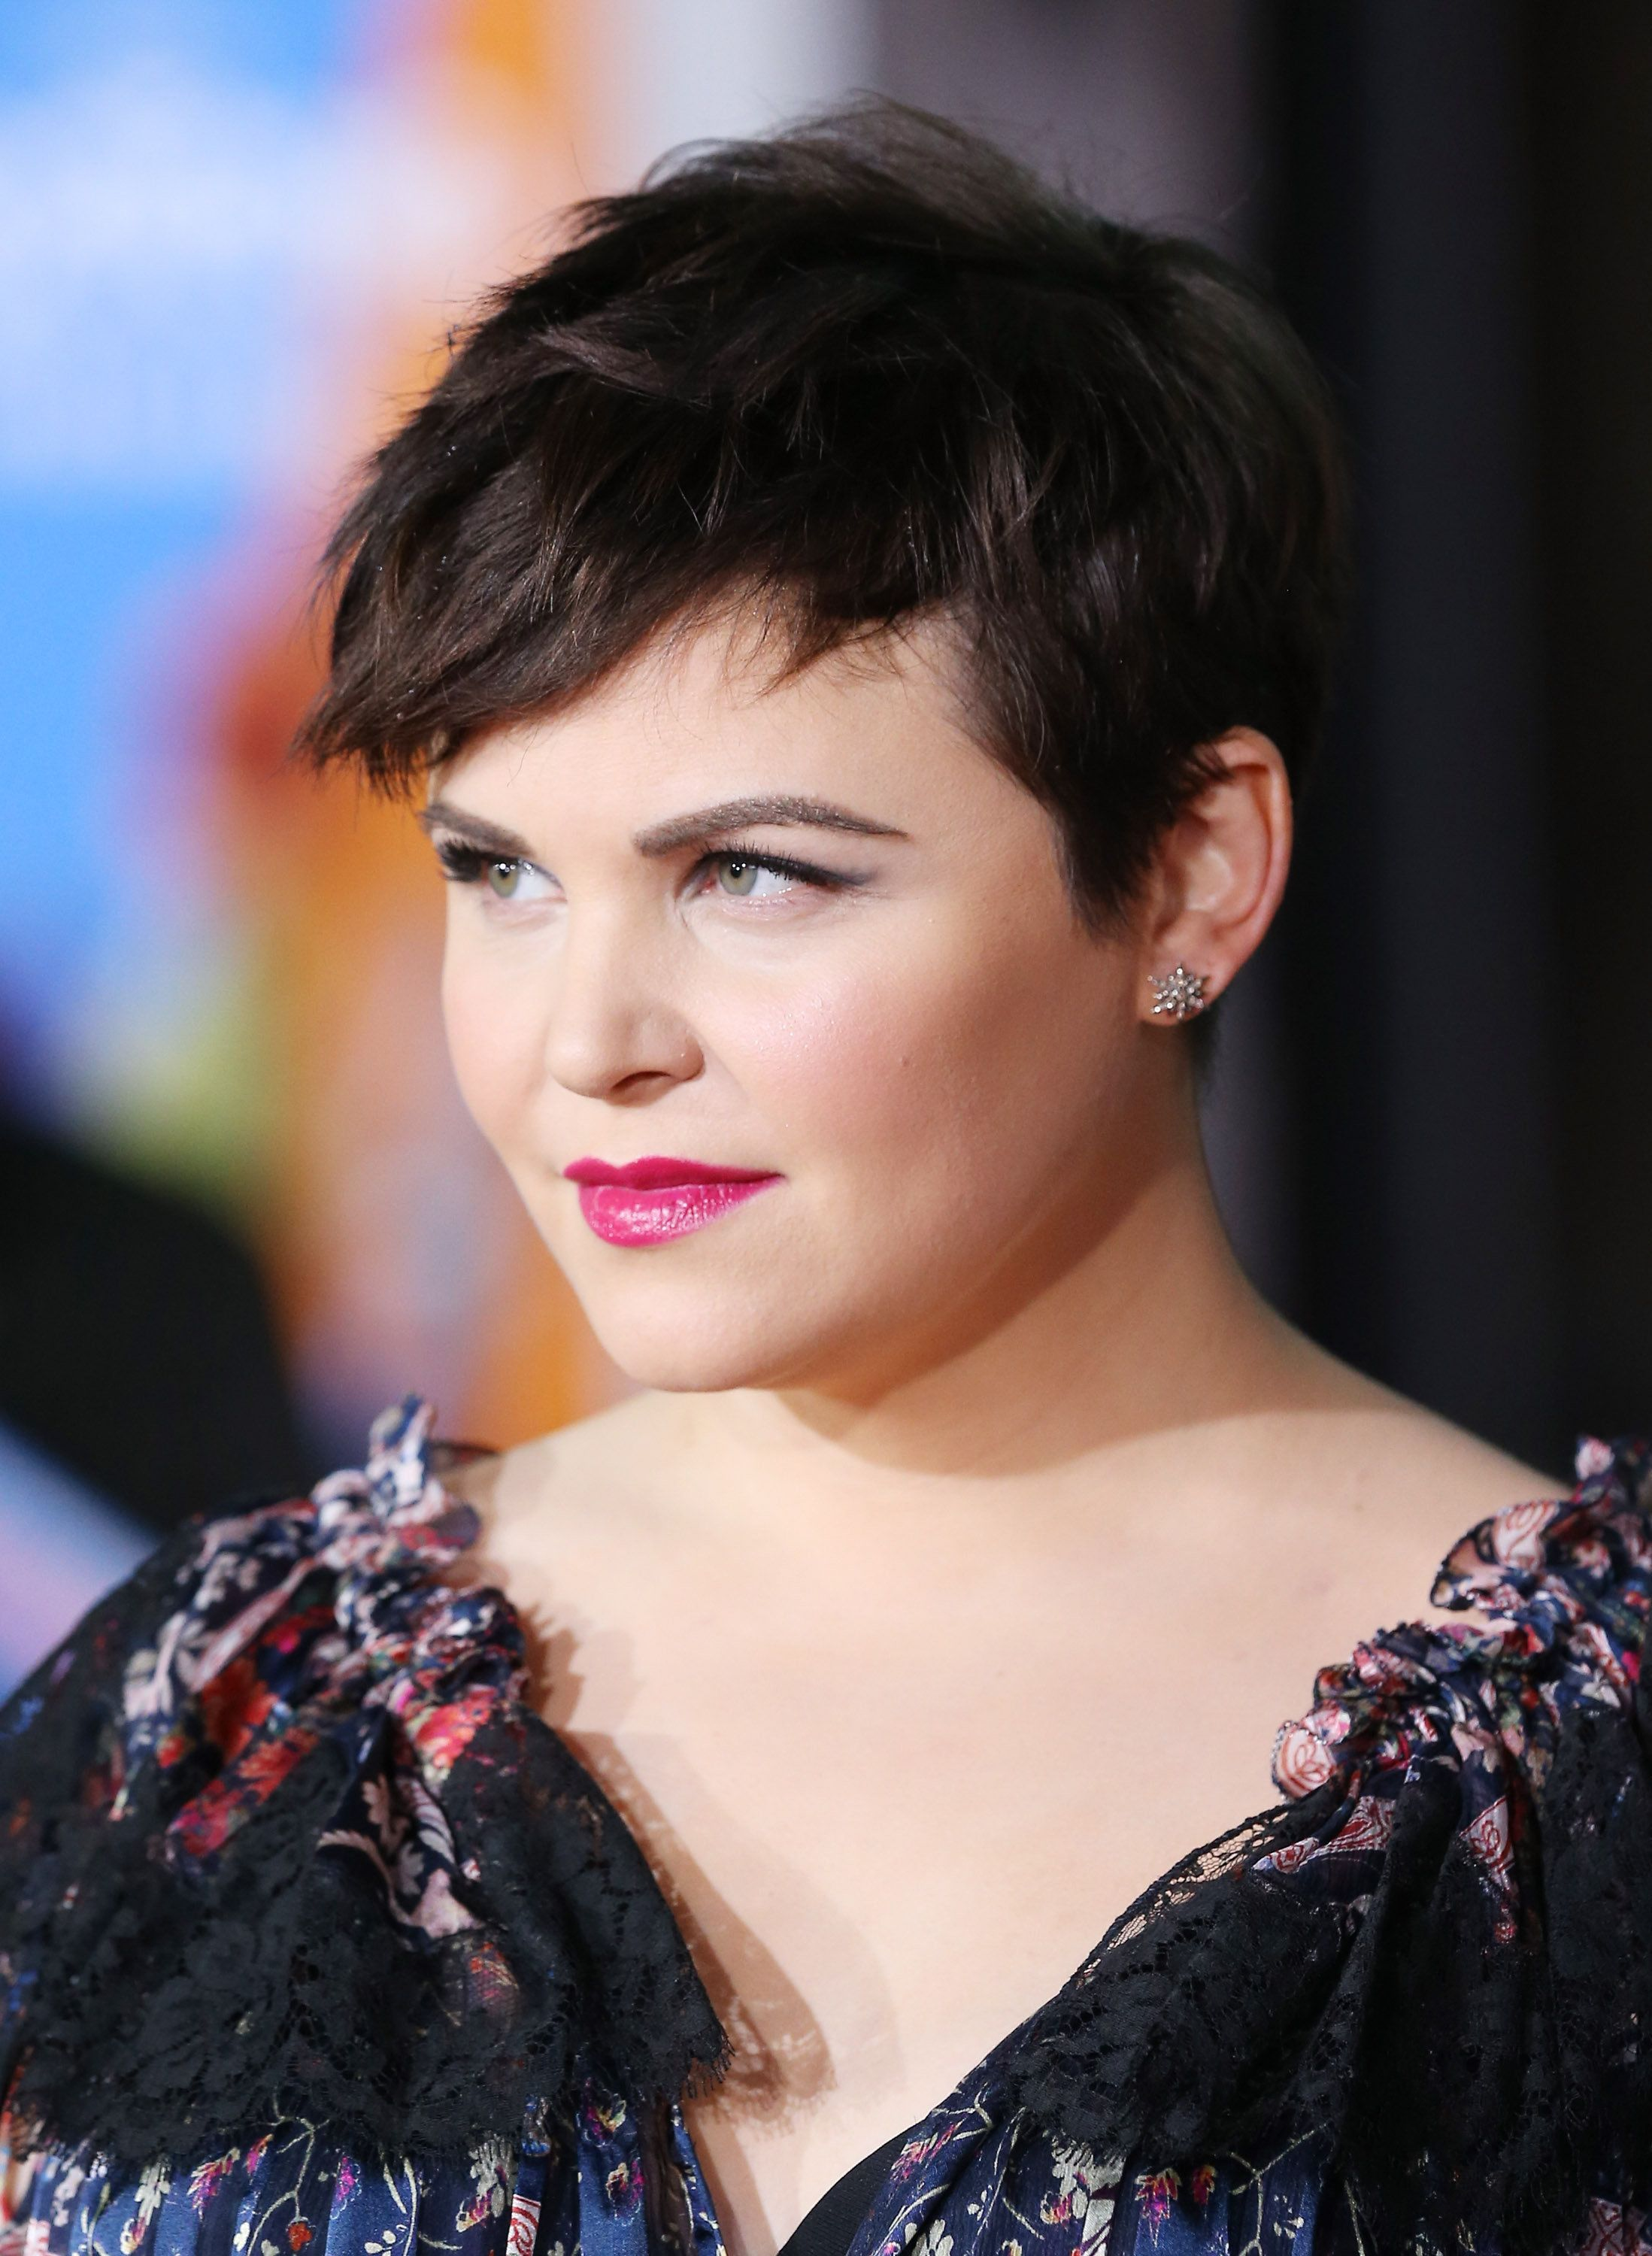 Copy Ginnifer Goodwin's textured pixie (and rich hair color) to fake fullness.